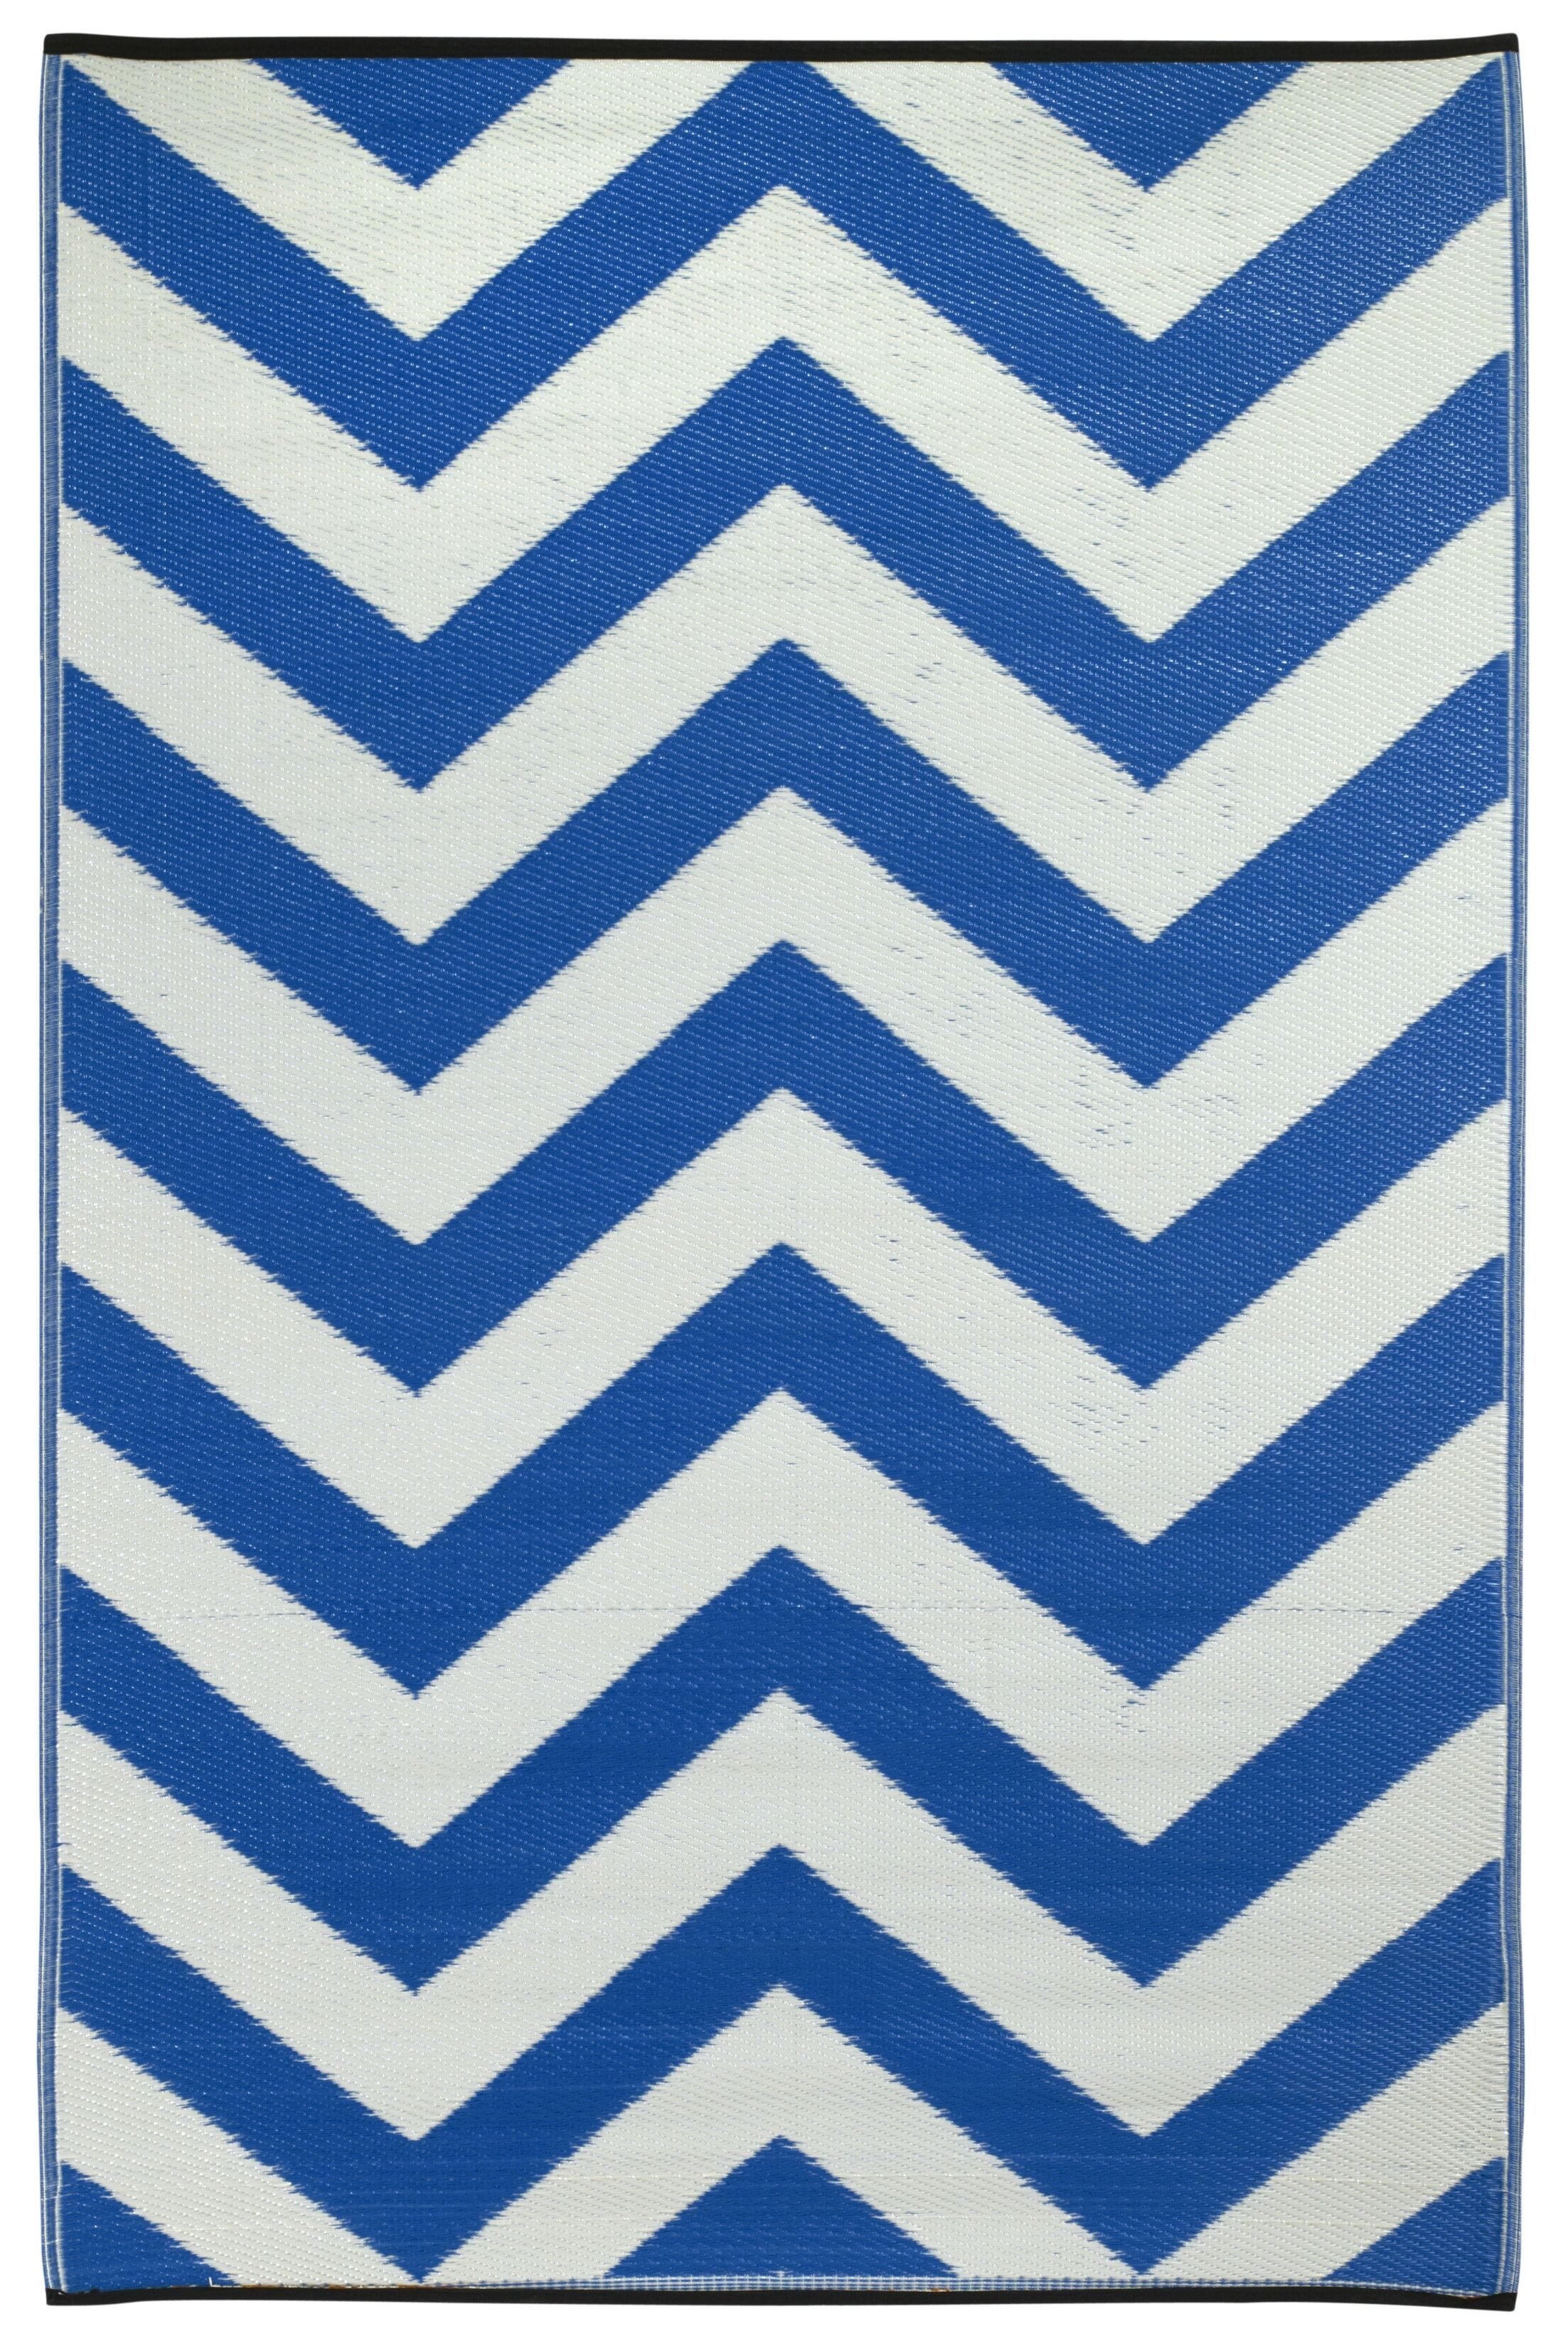 Laguna Hand Woven Blue/White Indoor/Outdoor Area Rug Rug Size: 6' x 9'